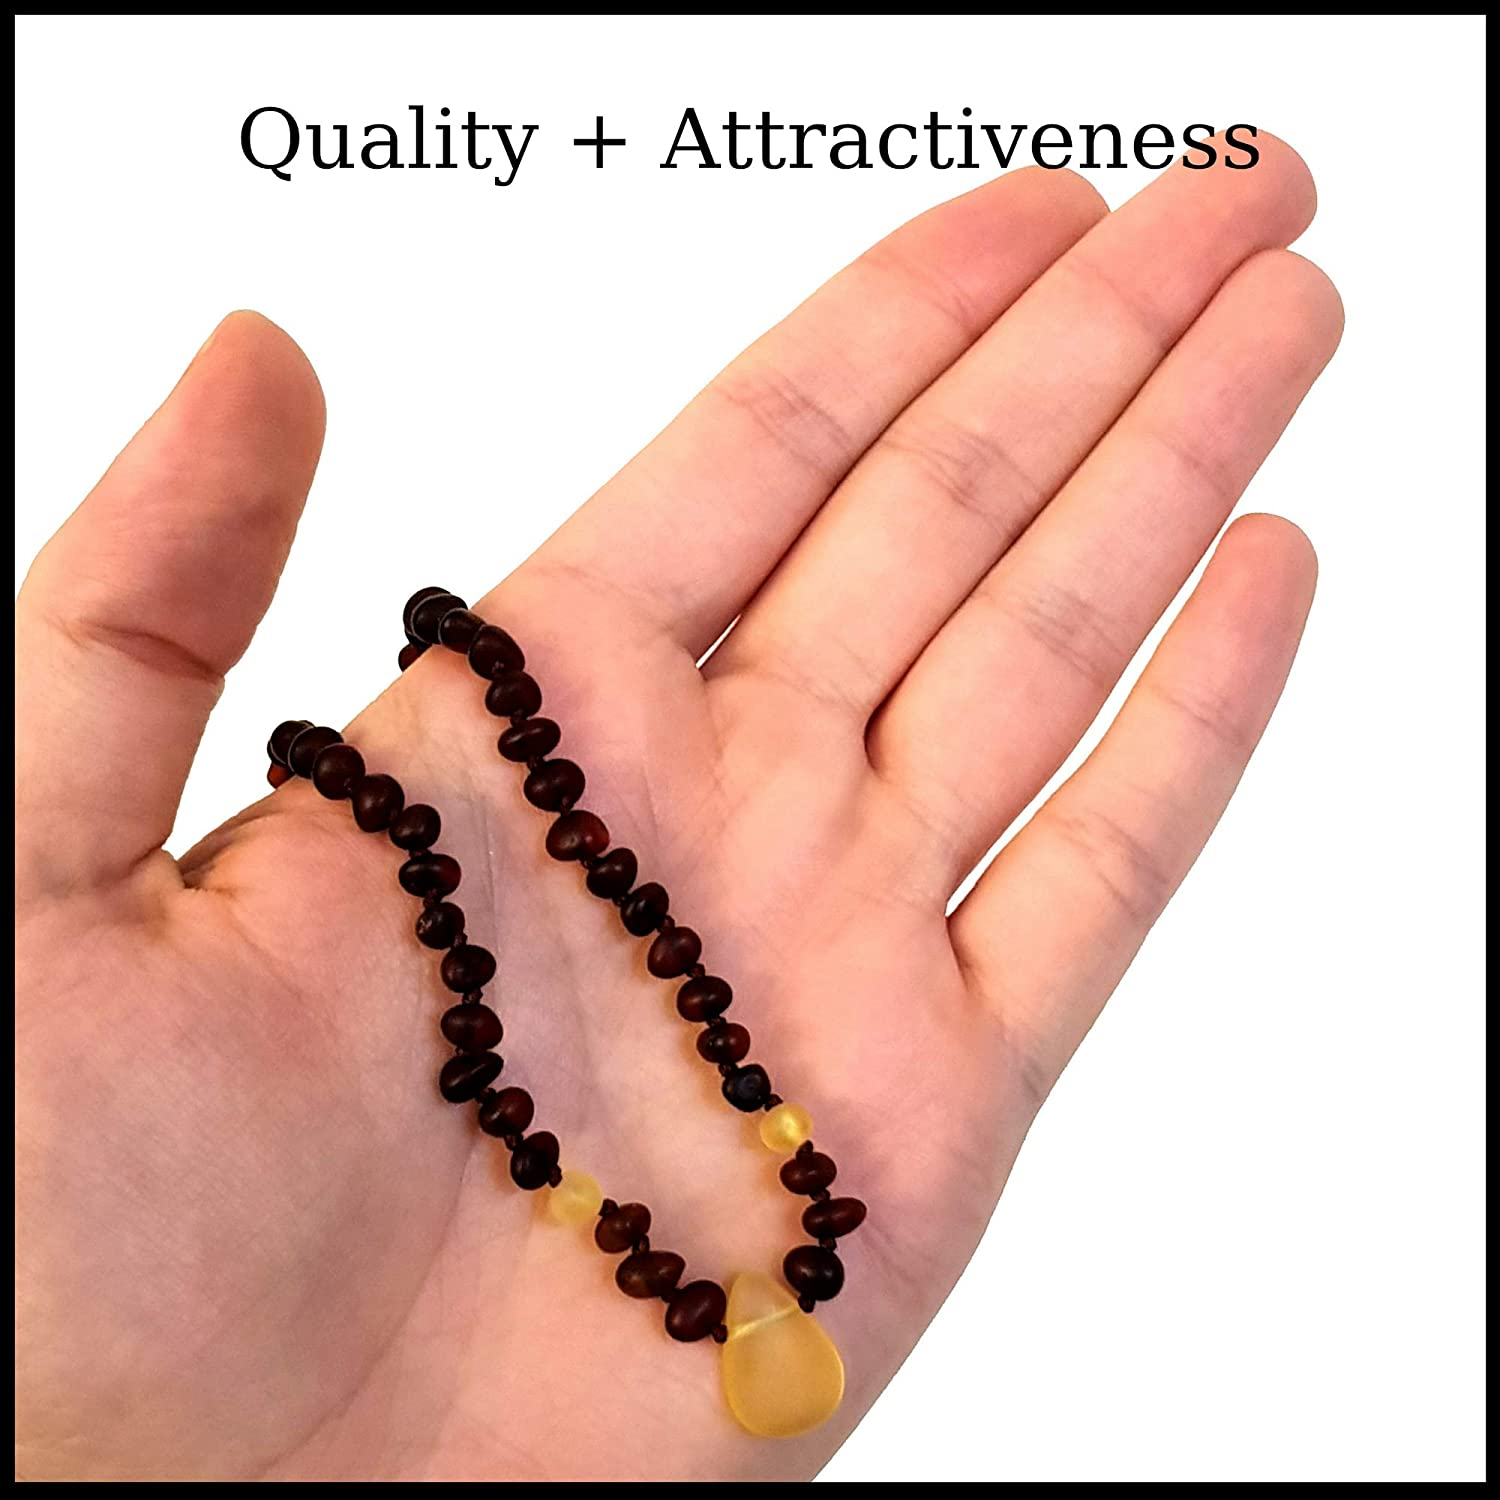 32 cm boy Girl Infants Anti-inflammatory, Drooling /& Natural Teething Pain Relief Authentic Raw Baltic Amber Teething Necklace for Babies Toddlers ATN01005 Ravan/'s Perfect Gift for Baby Shower